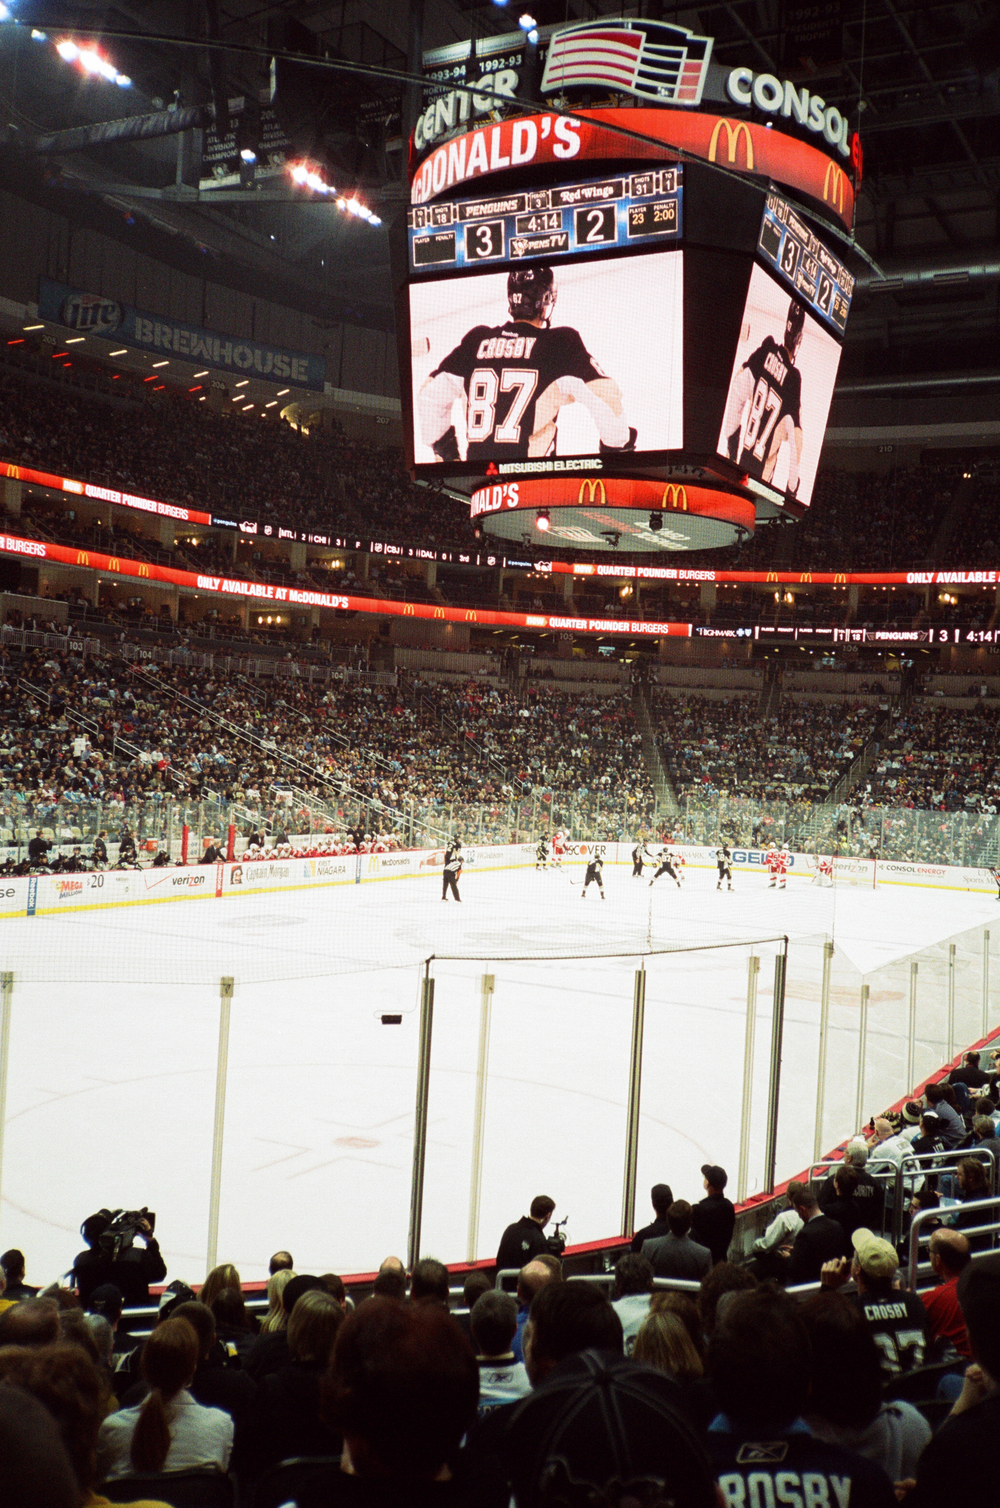 Hockey-Night-In-Pittsburgh-Film-Photography-Karlsson-054.jpg